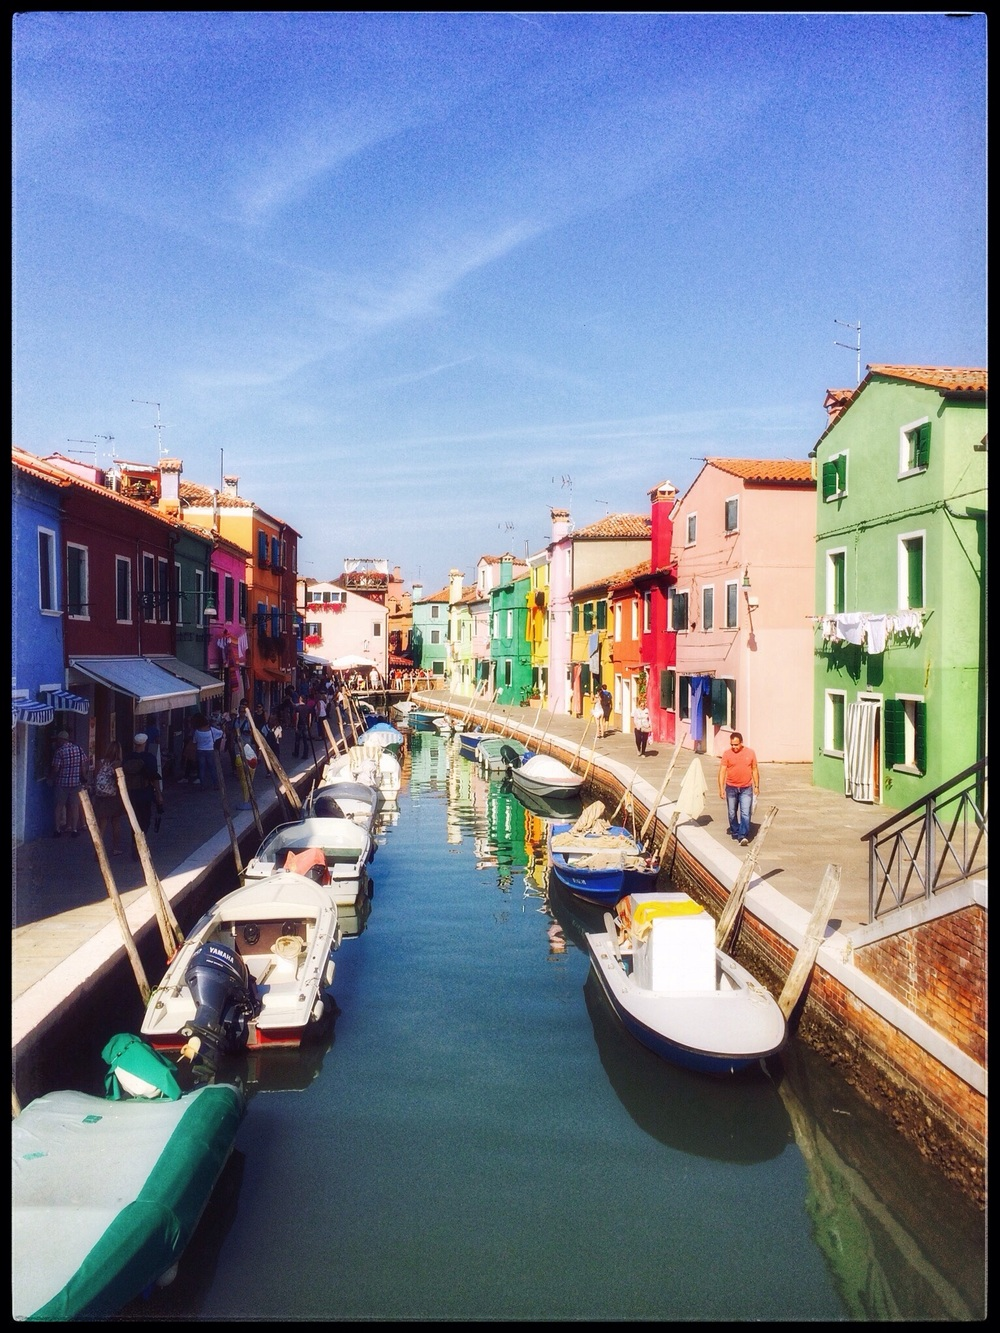 Burano without the fog